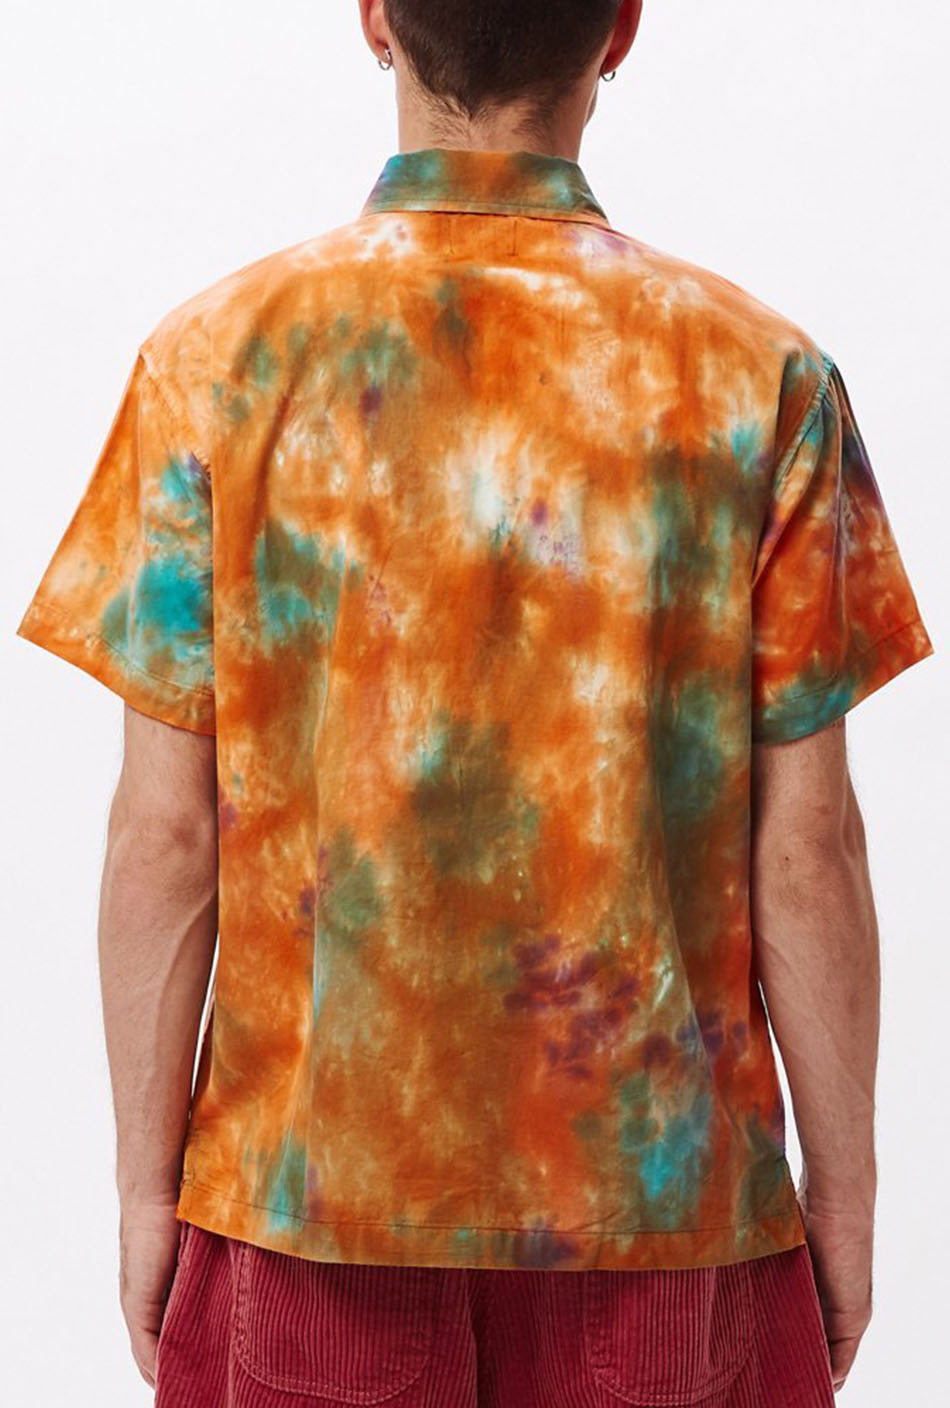 Obey Drops Polohemd in Orange/Bunt